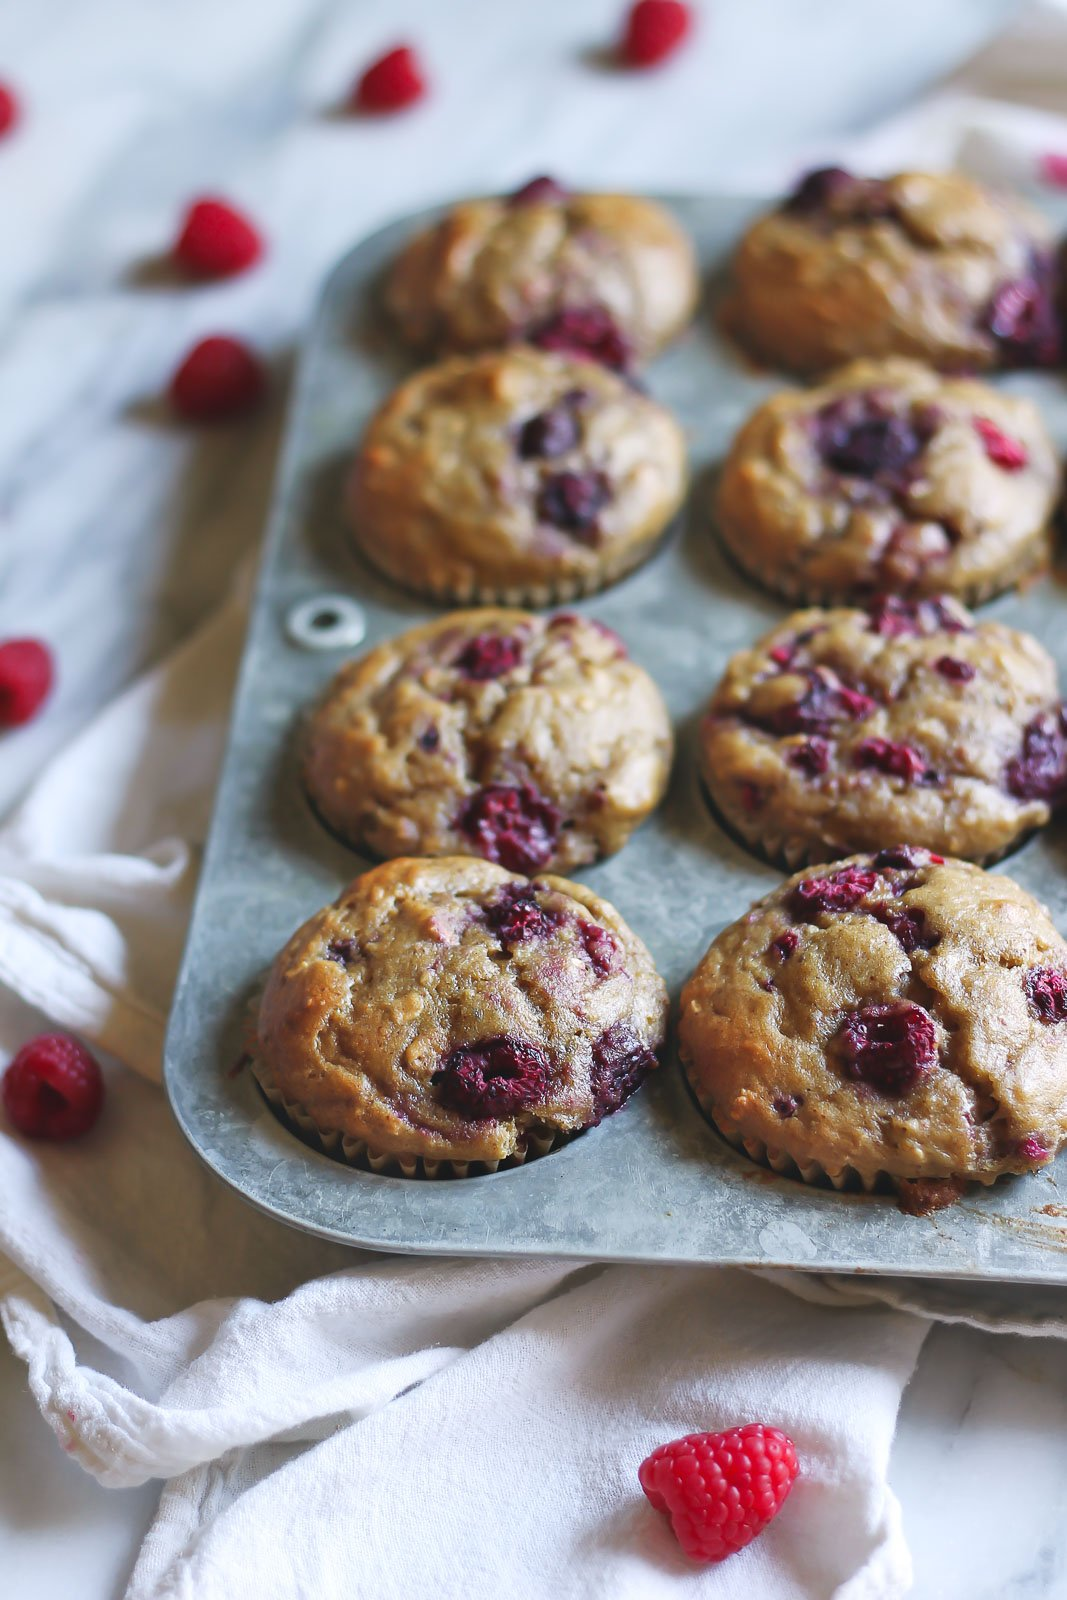 Healthy Banana Oatmeal Muffins Bursting With Fresh Juicy Raspberries These Amazing Muffins Are Made